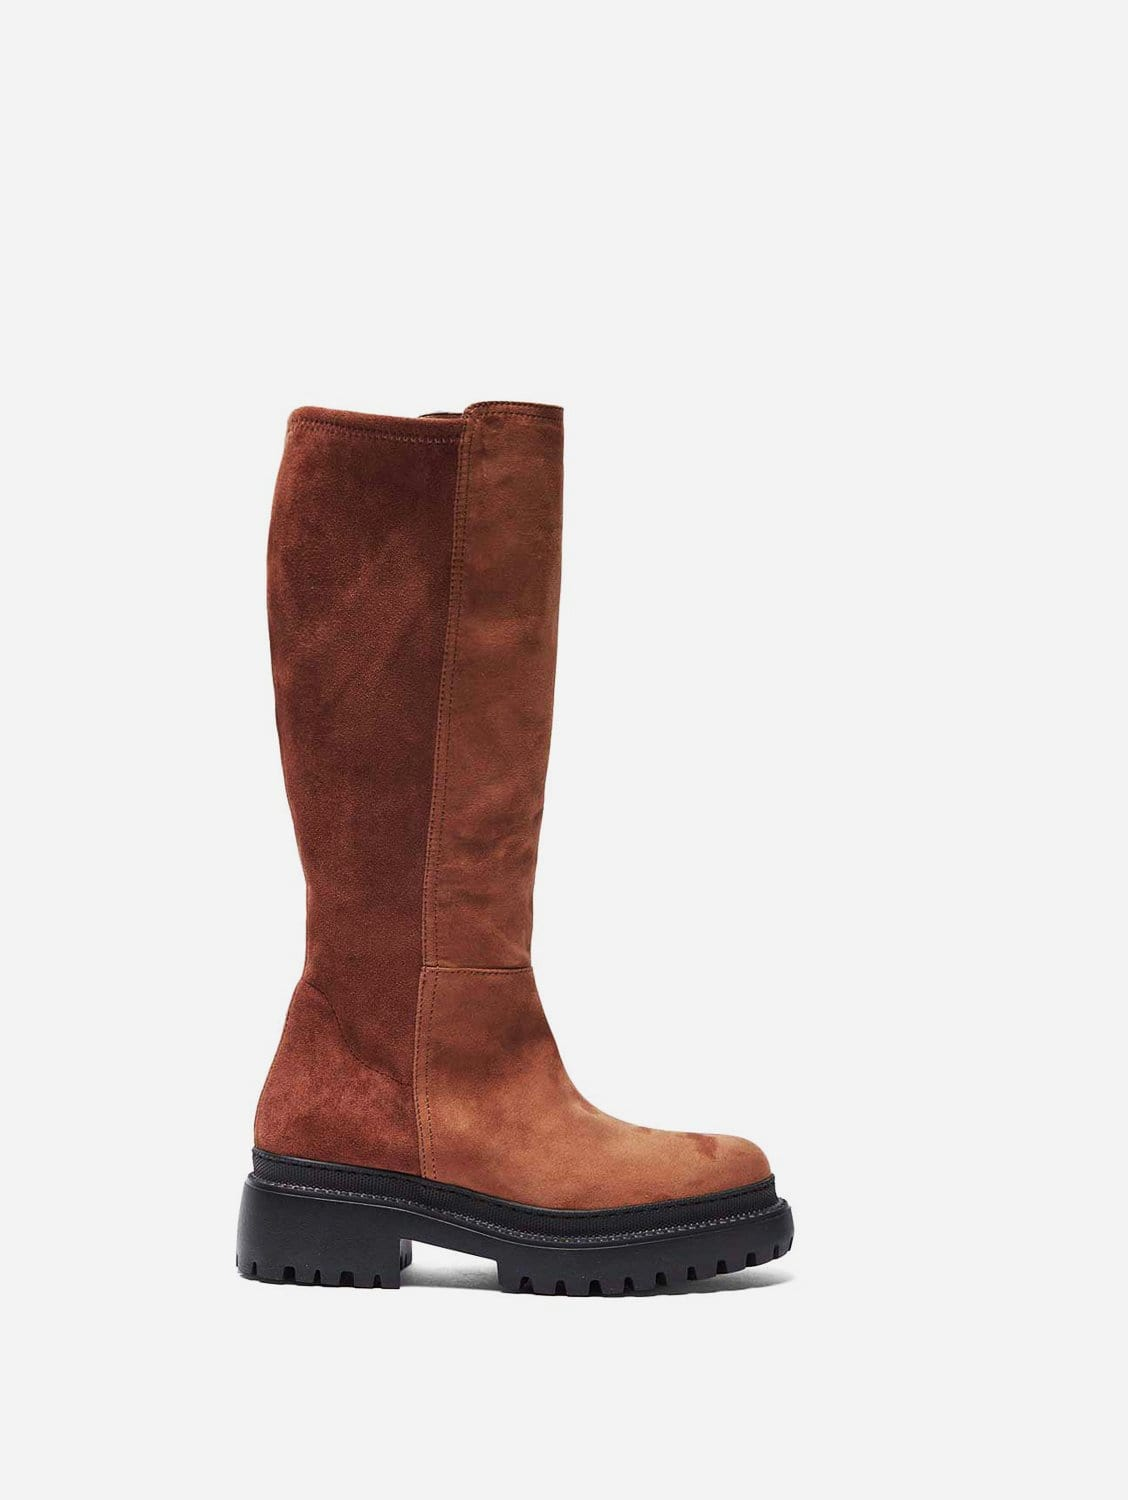 Laila Recycled Polyester Vegan Suede Winter Boots   Camel